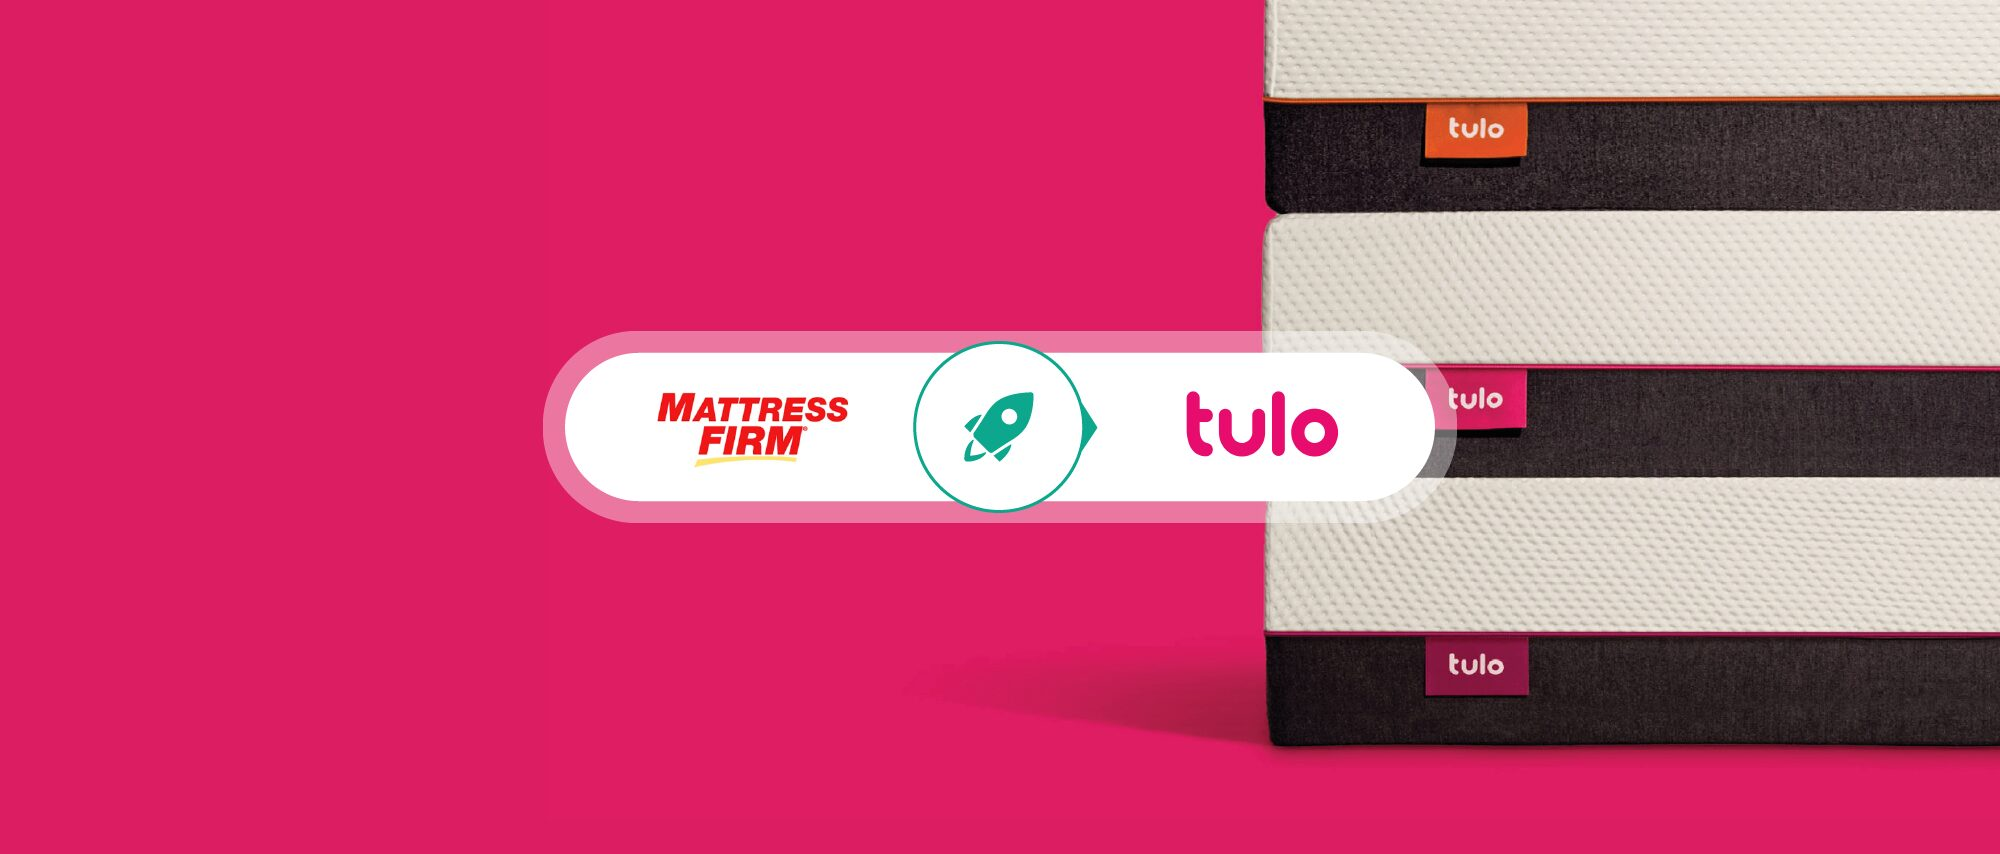 Mattress Firm's Tulo: An easy bed-in-a-box solution to suit every need